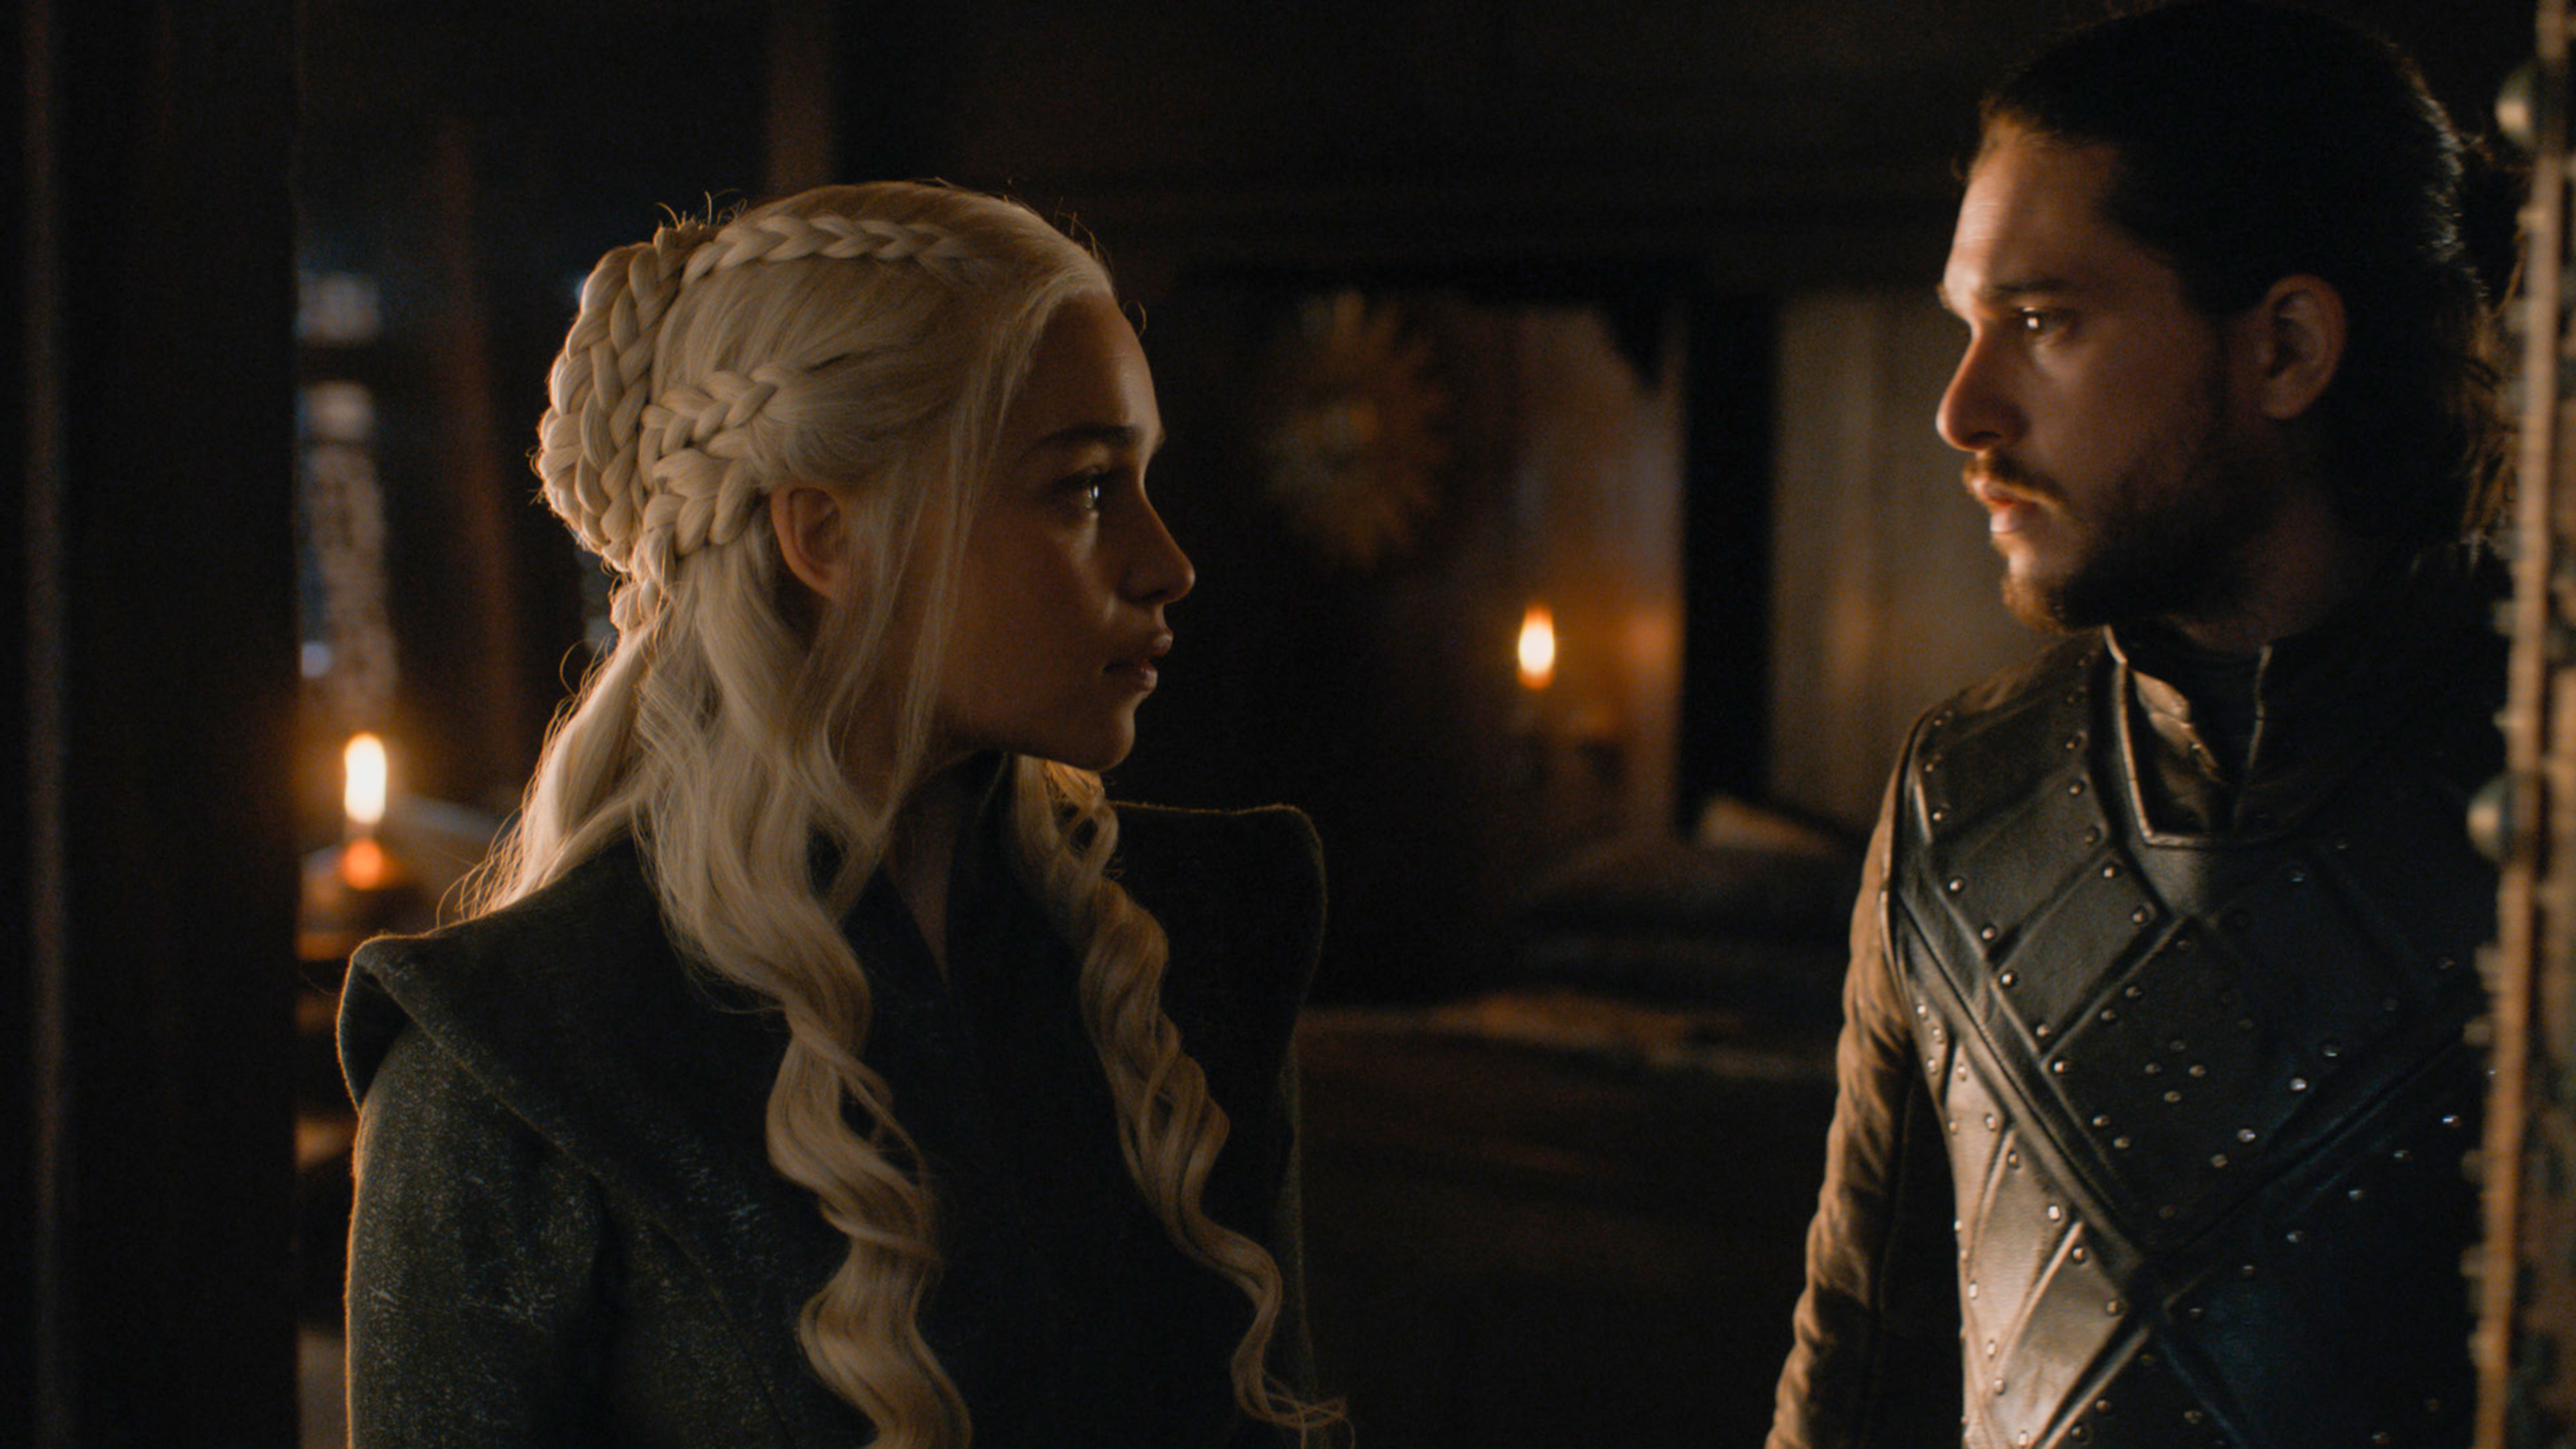 Game-Of-Thrones-Breaks-Another-Audience-Record-With-Season-7-Finale